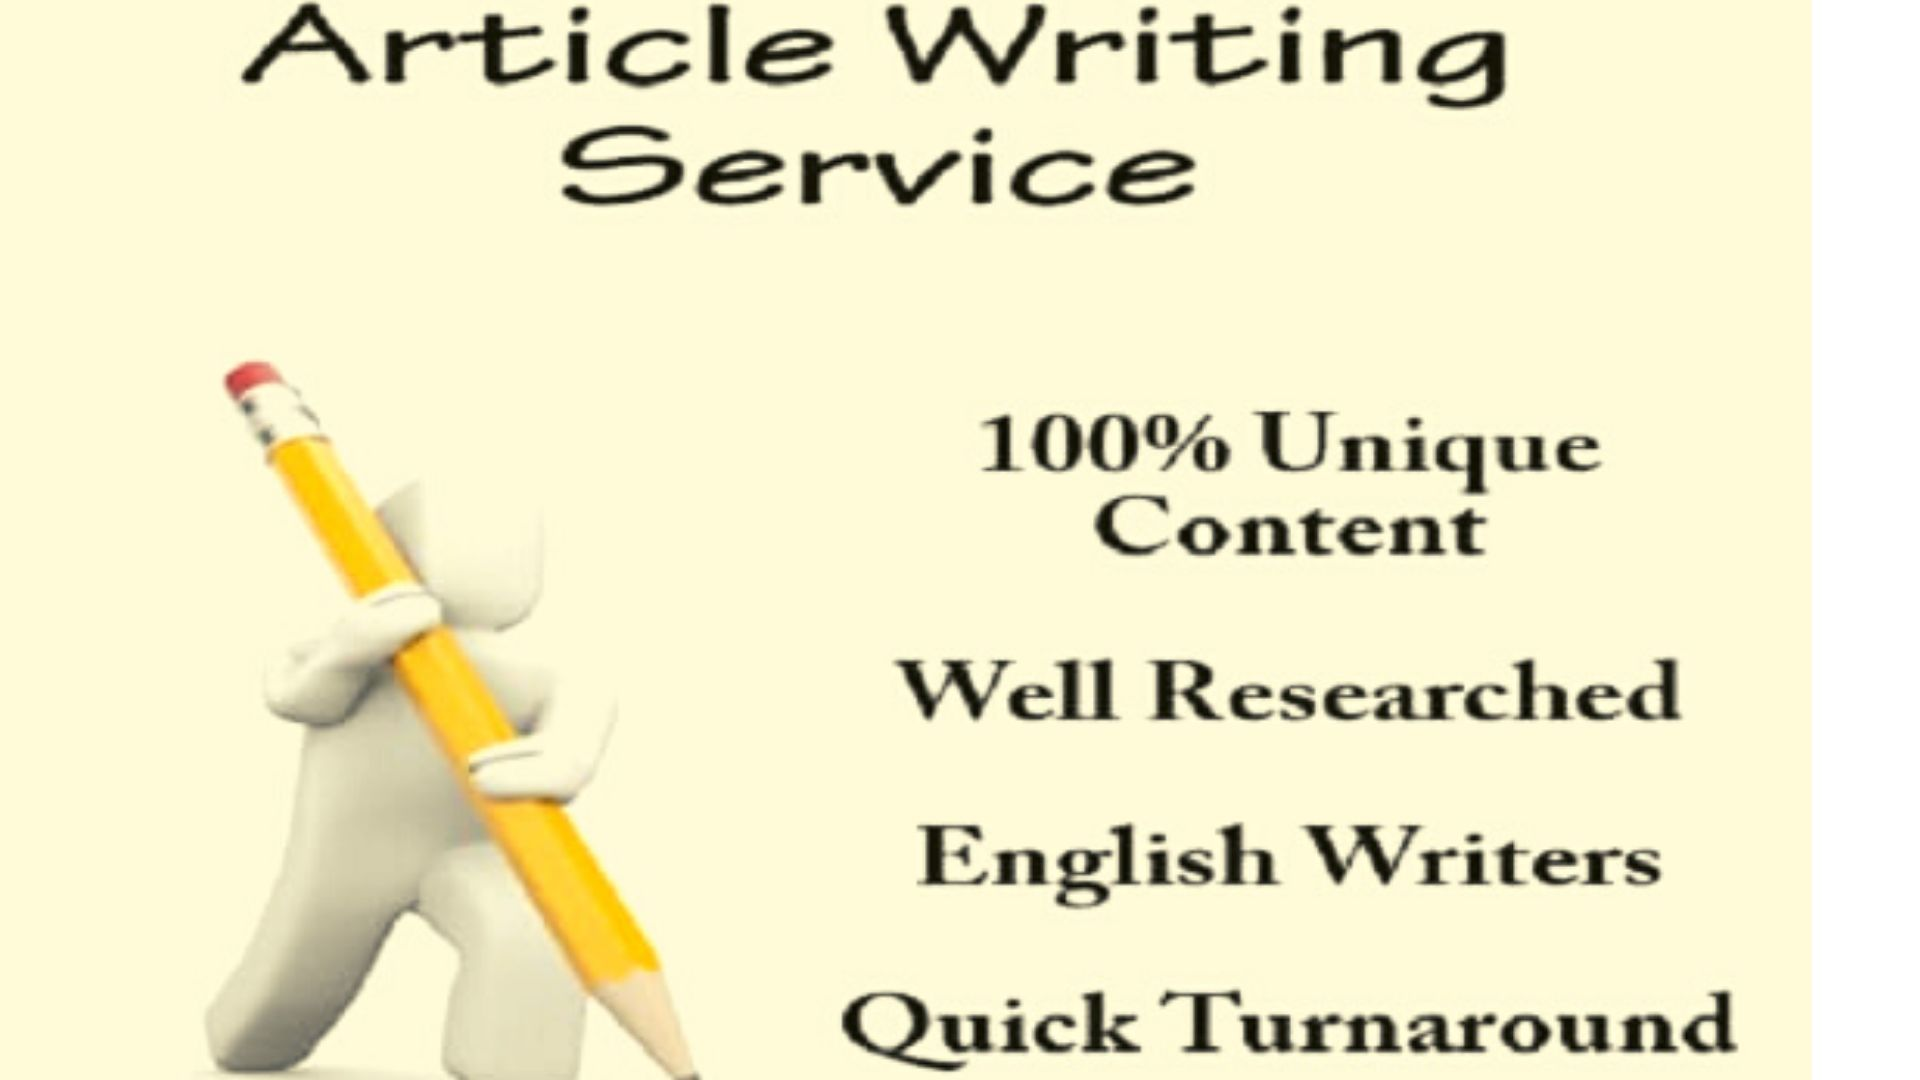 I will provide 3 organic Article writing service for your website